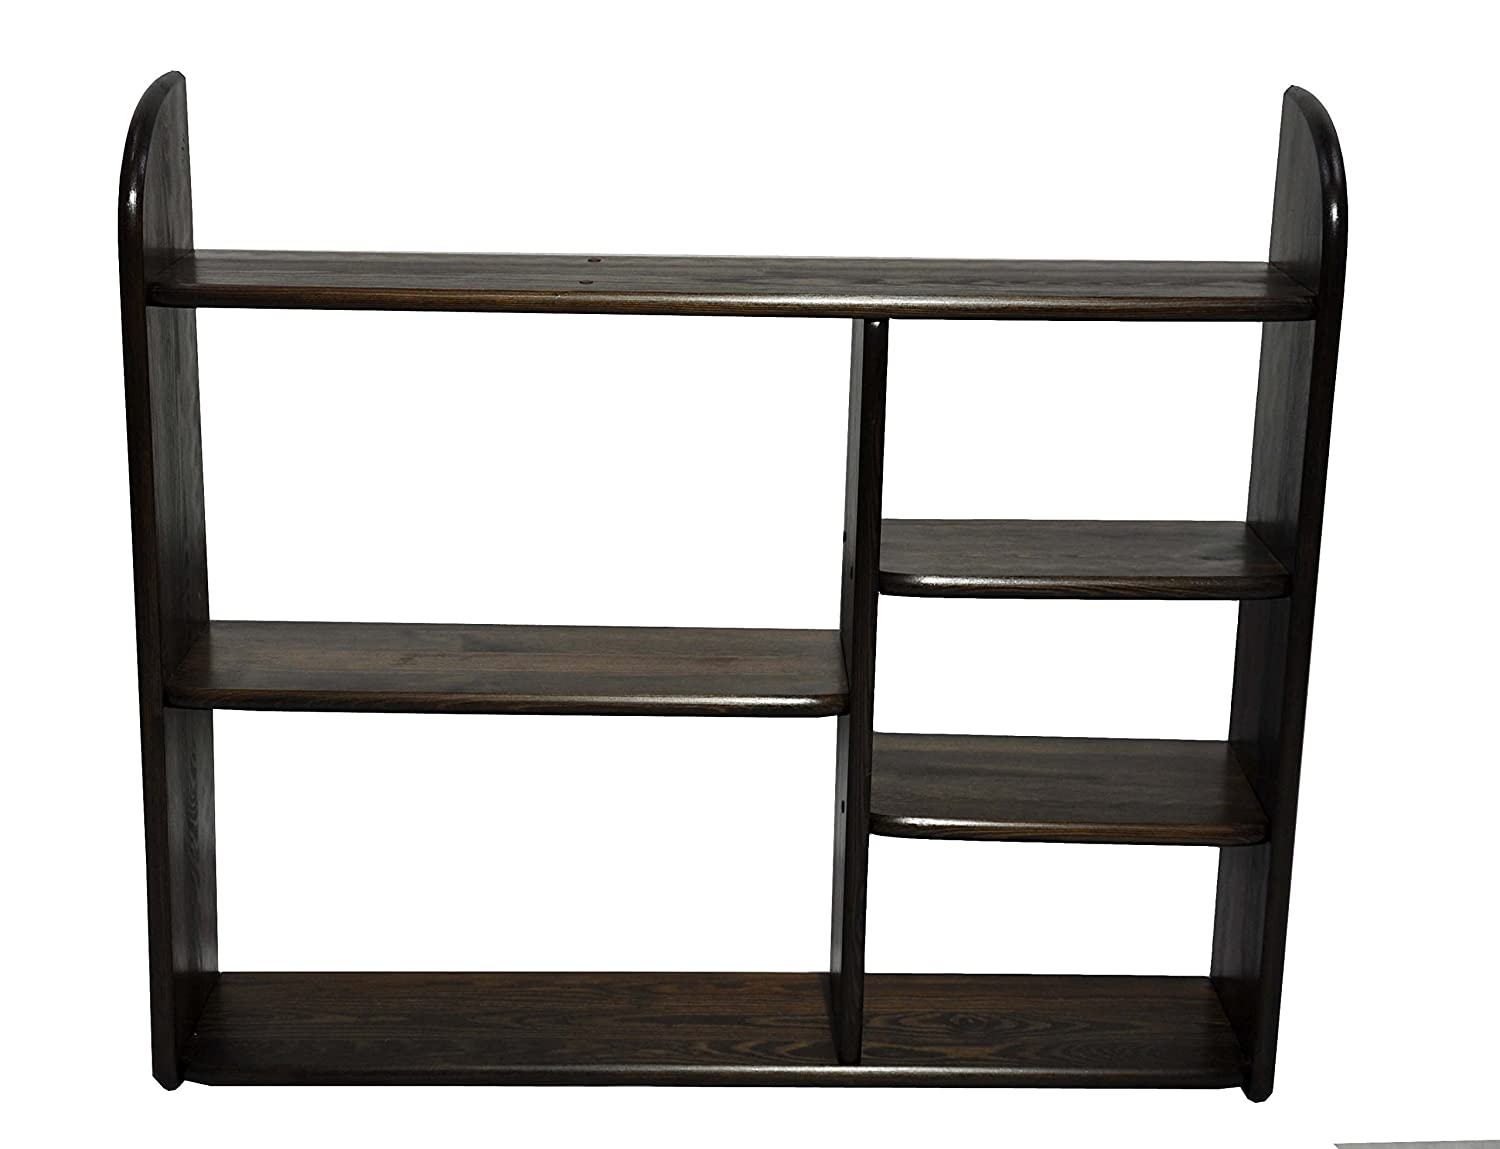 Solid Pine Bookcase Wall Shelf Rack Pine H 90 x B 100 x T 20 cm (walnut) Magnetic Mobel